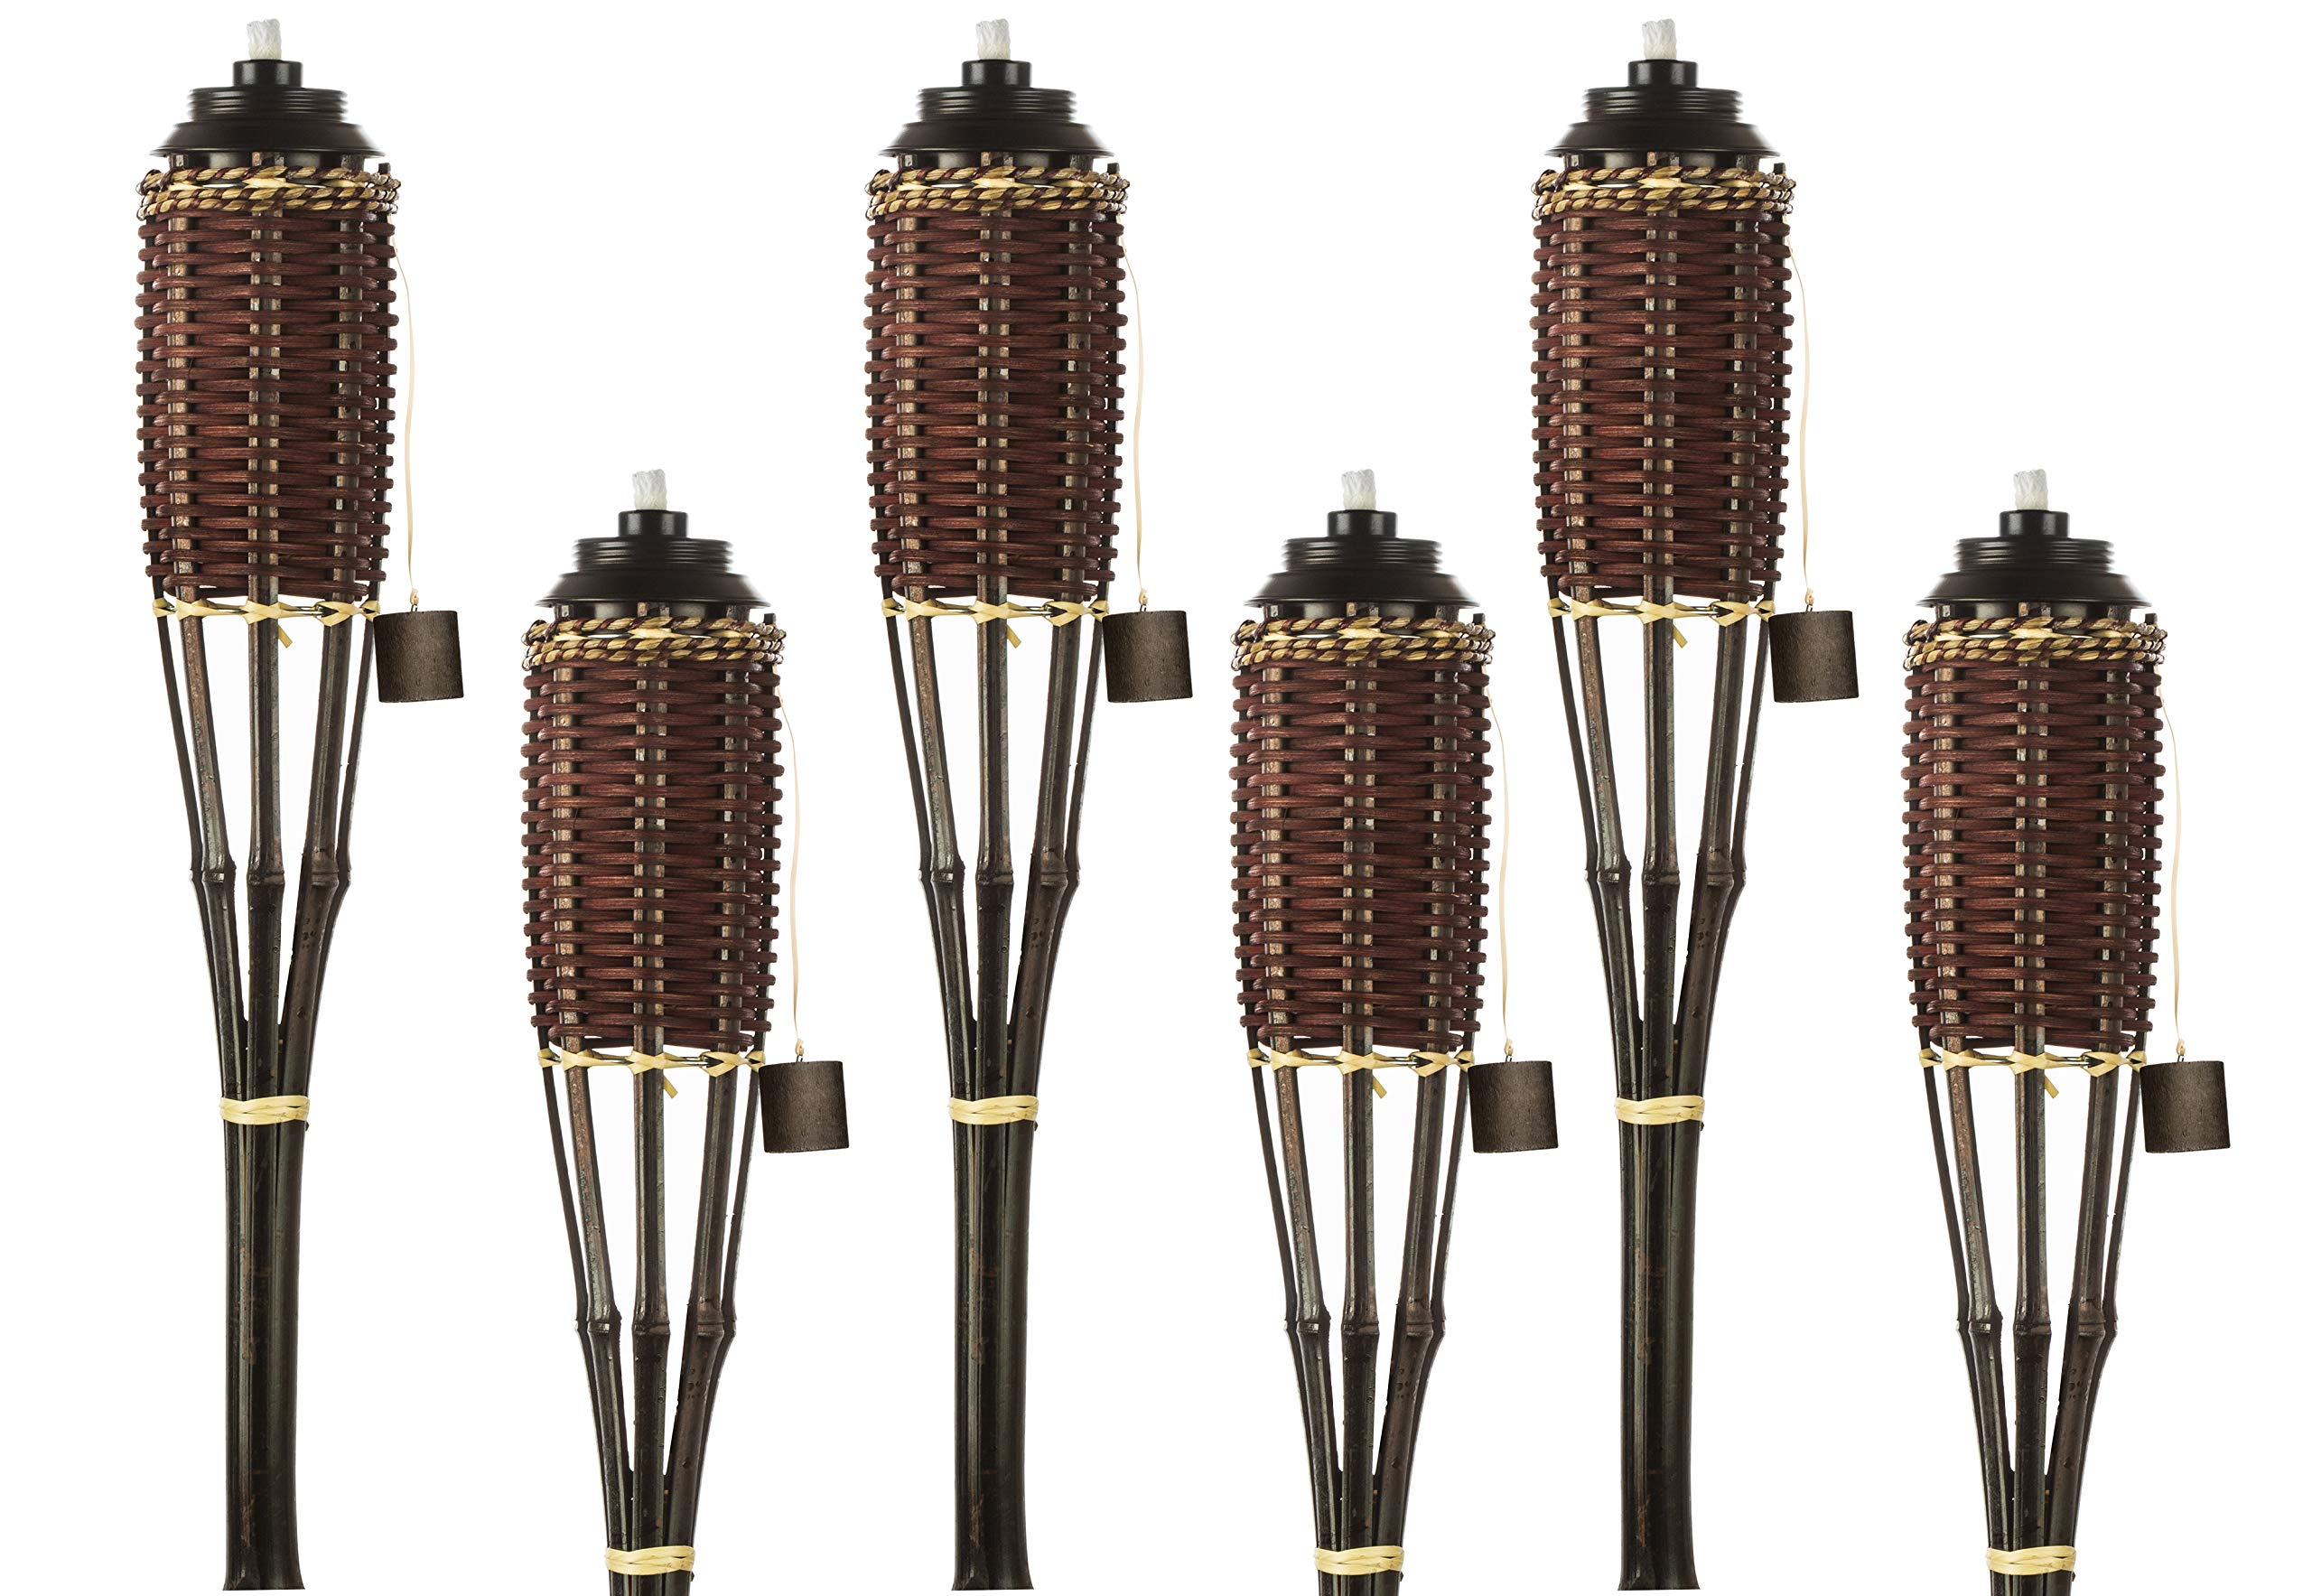 Brown Weave Bamboo Torches; Decorative Torches; Fiberglass Wicks; Extra-Large (16oz) Metal Canisters for Longer Lasting Burn; Stands 59'' Tall (6 Pack)